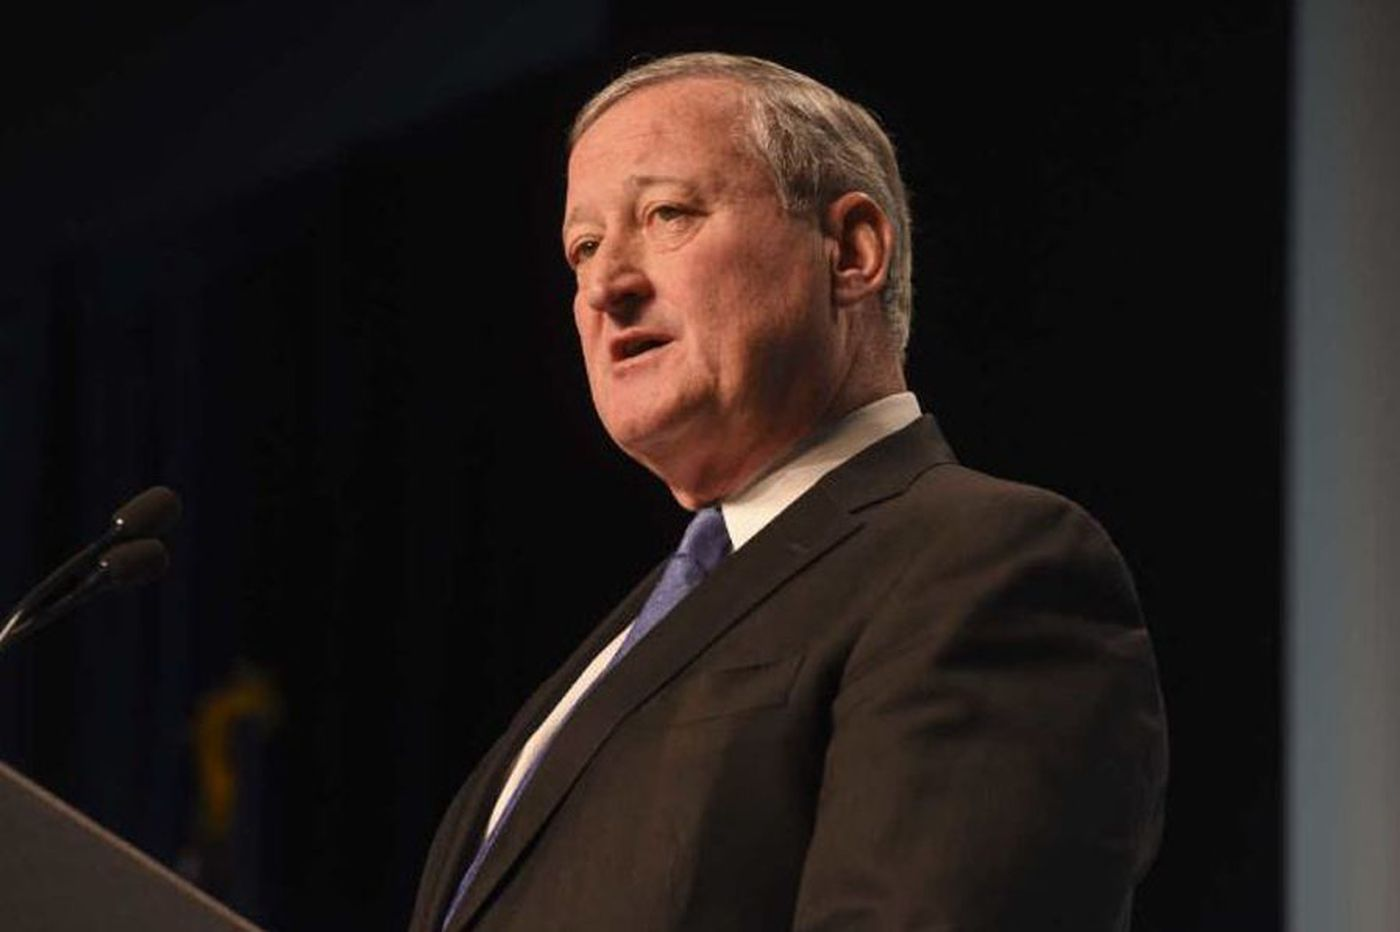 When he was on City Council, Mayor Kenney opposed sharing arrest information with ICE